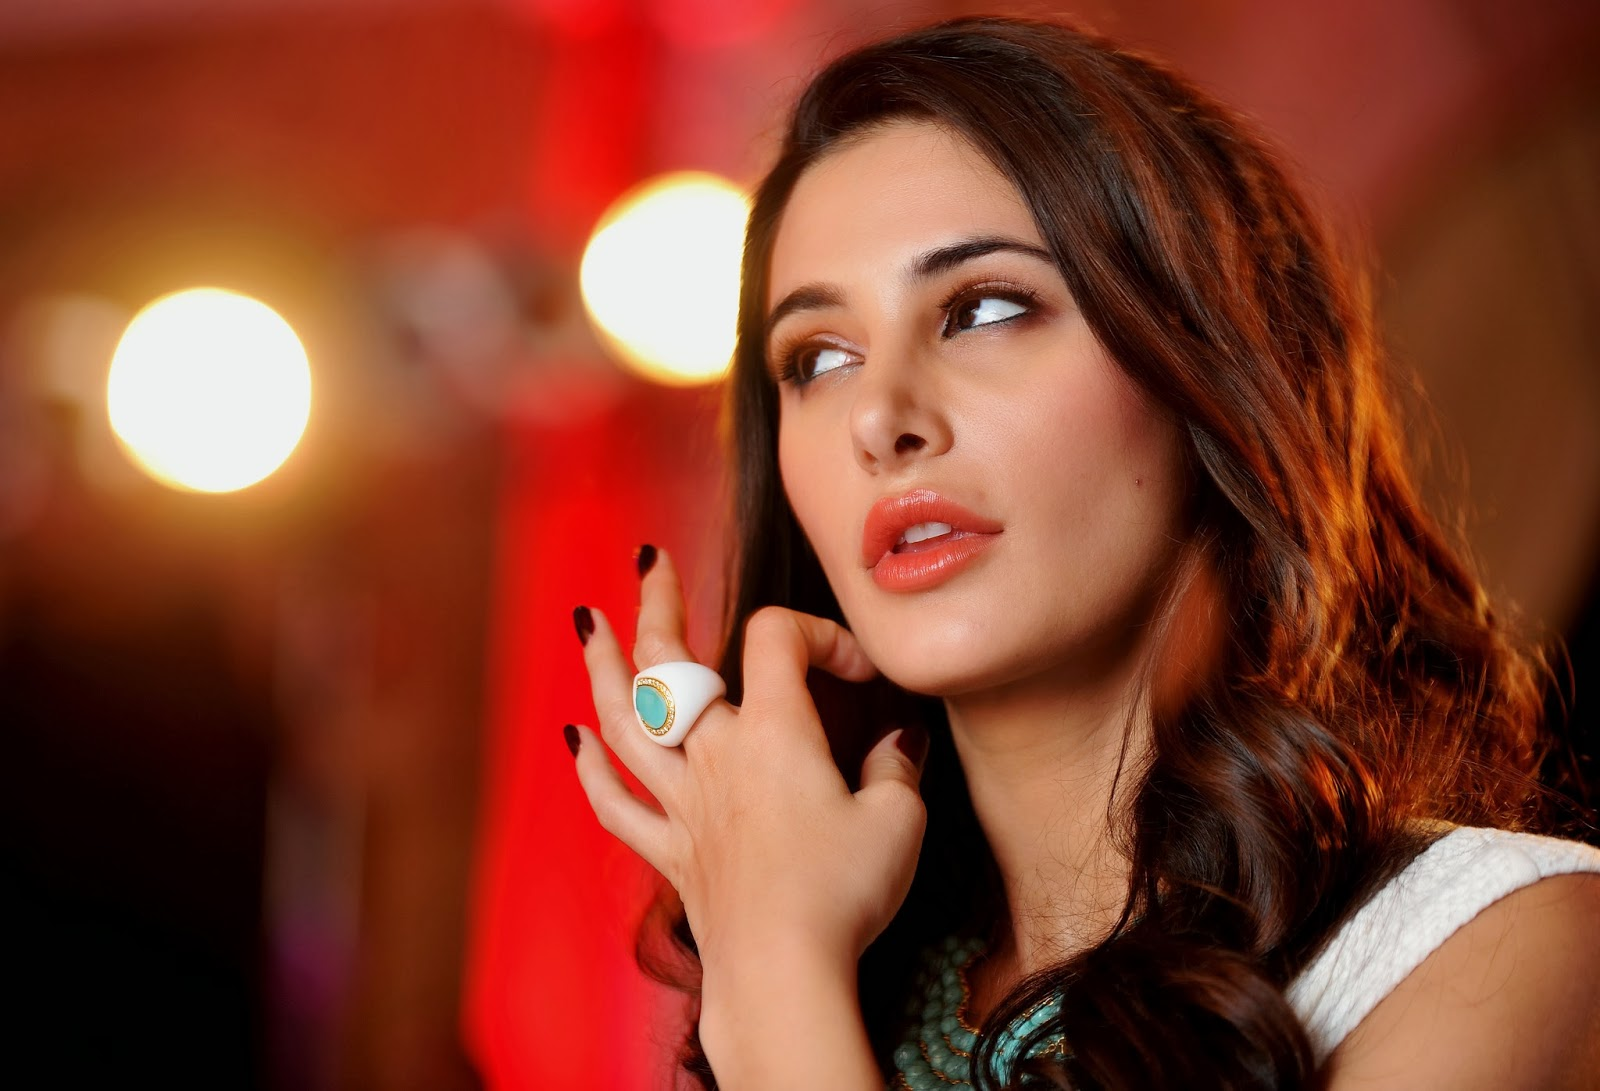 Actress, Affair, Bollywood, Bollywood scandal, Fashion model, Love Affair, Model, Nargis Fakhri, Relationship, Uday Chopra,